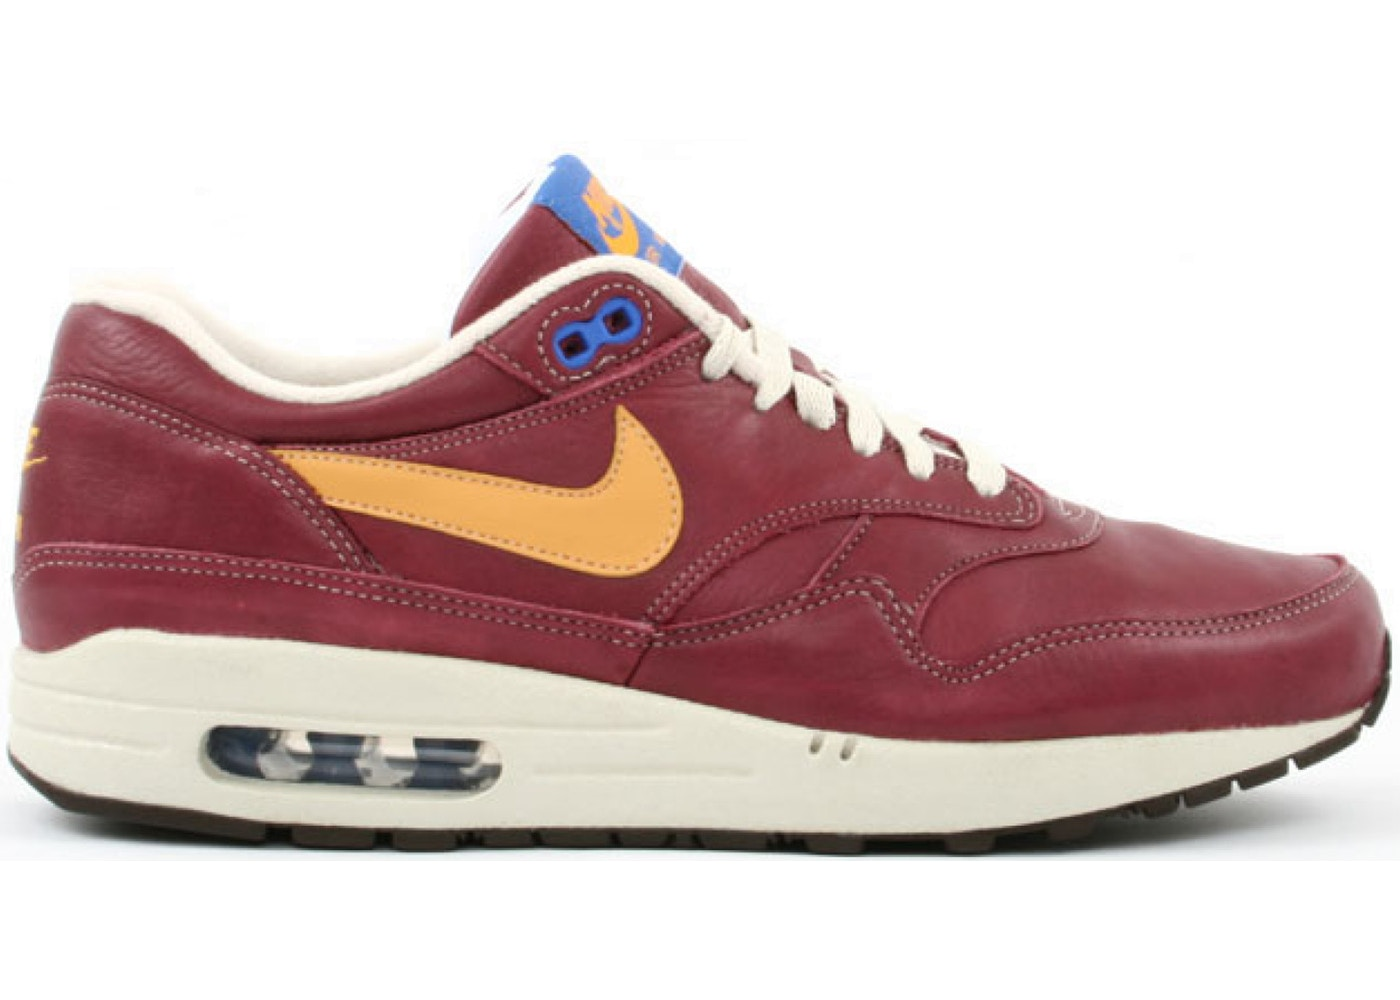 timeless design 45764 a8b4e Air Max 1 Team Red Gold Leaf - 312748-671